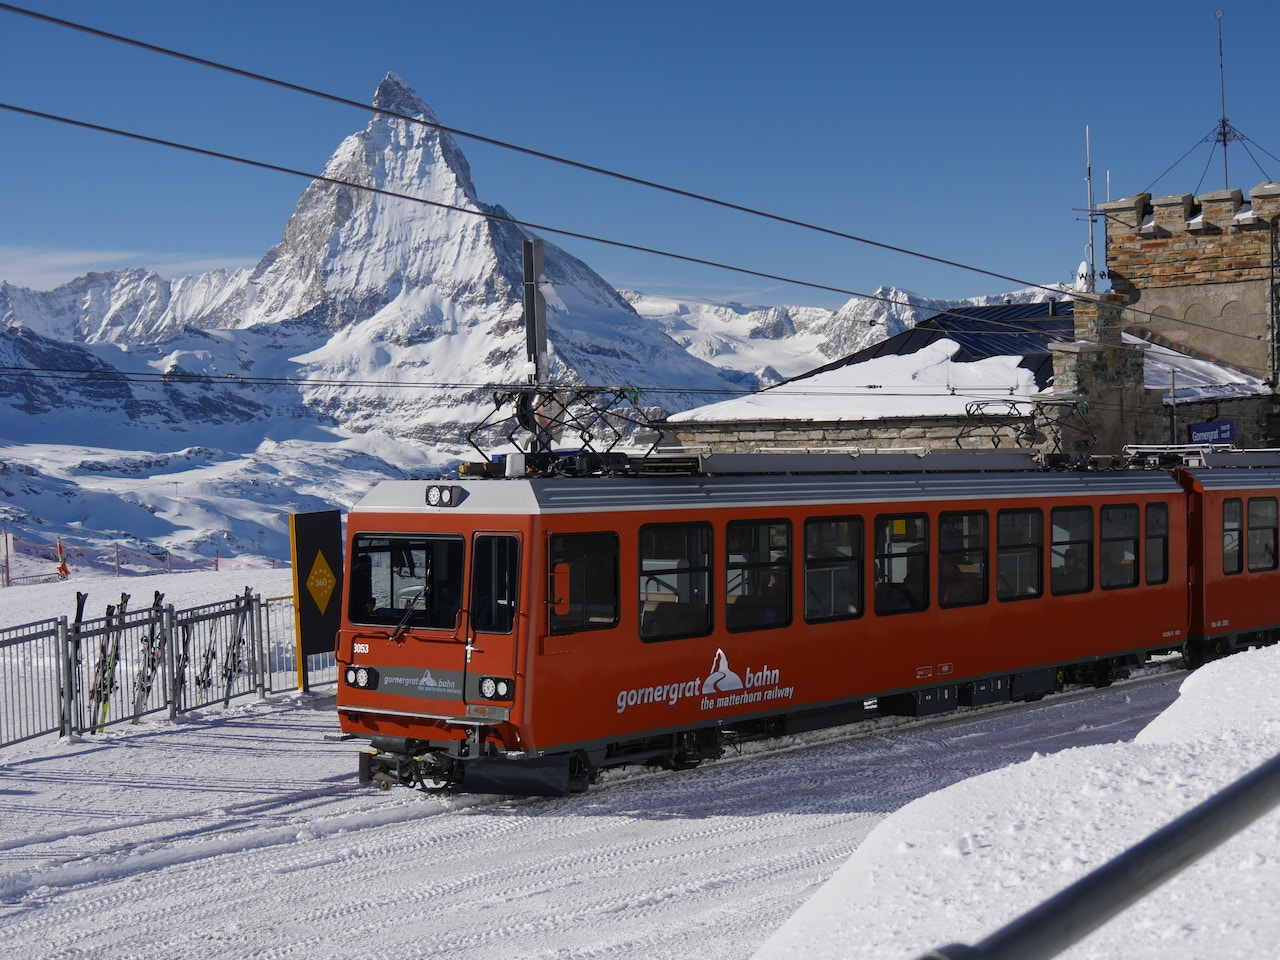 A traditional red coloured tram in Gornergrat in Zermatt